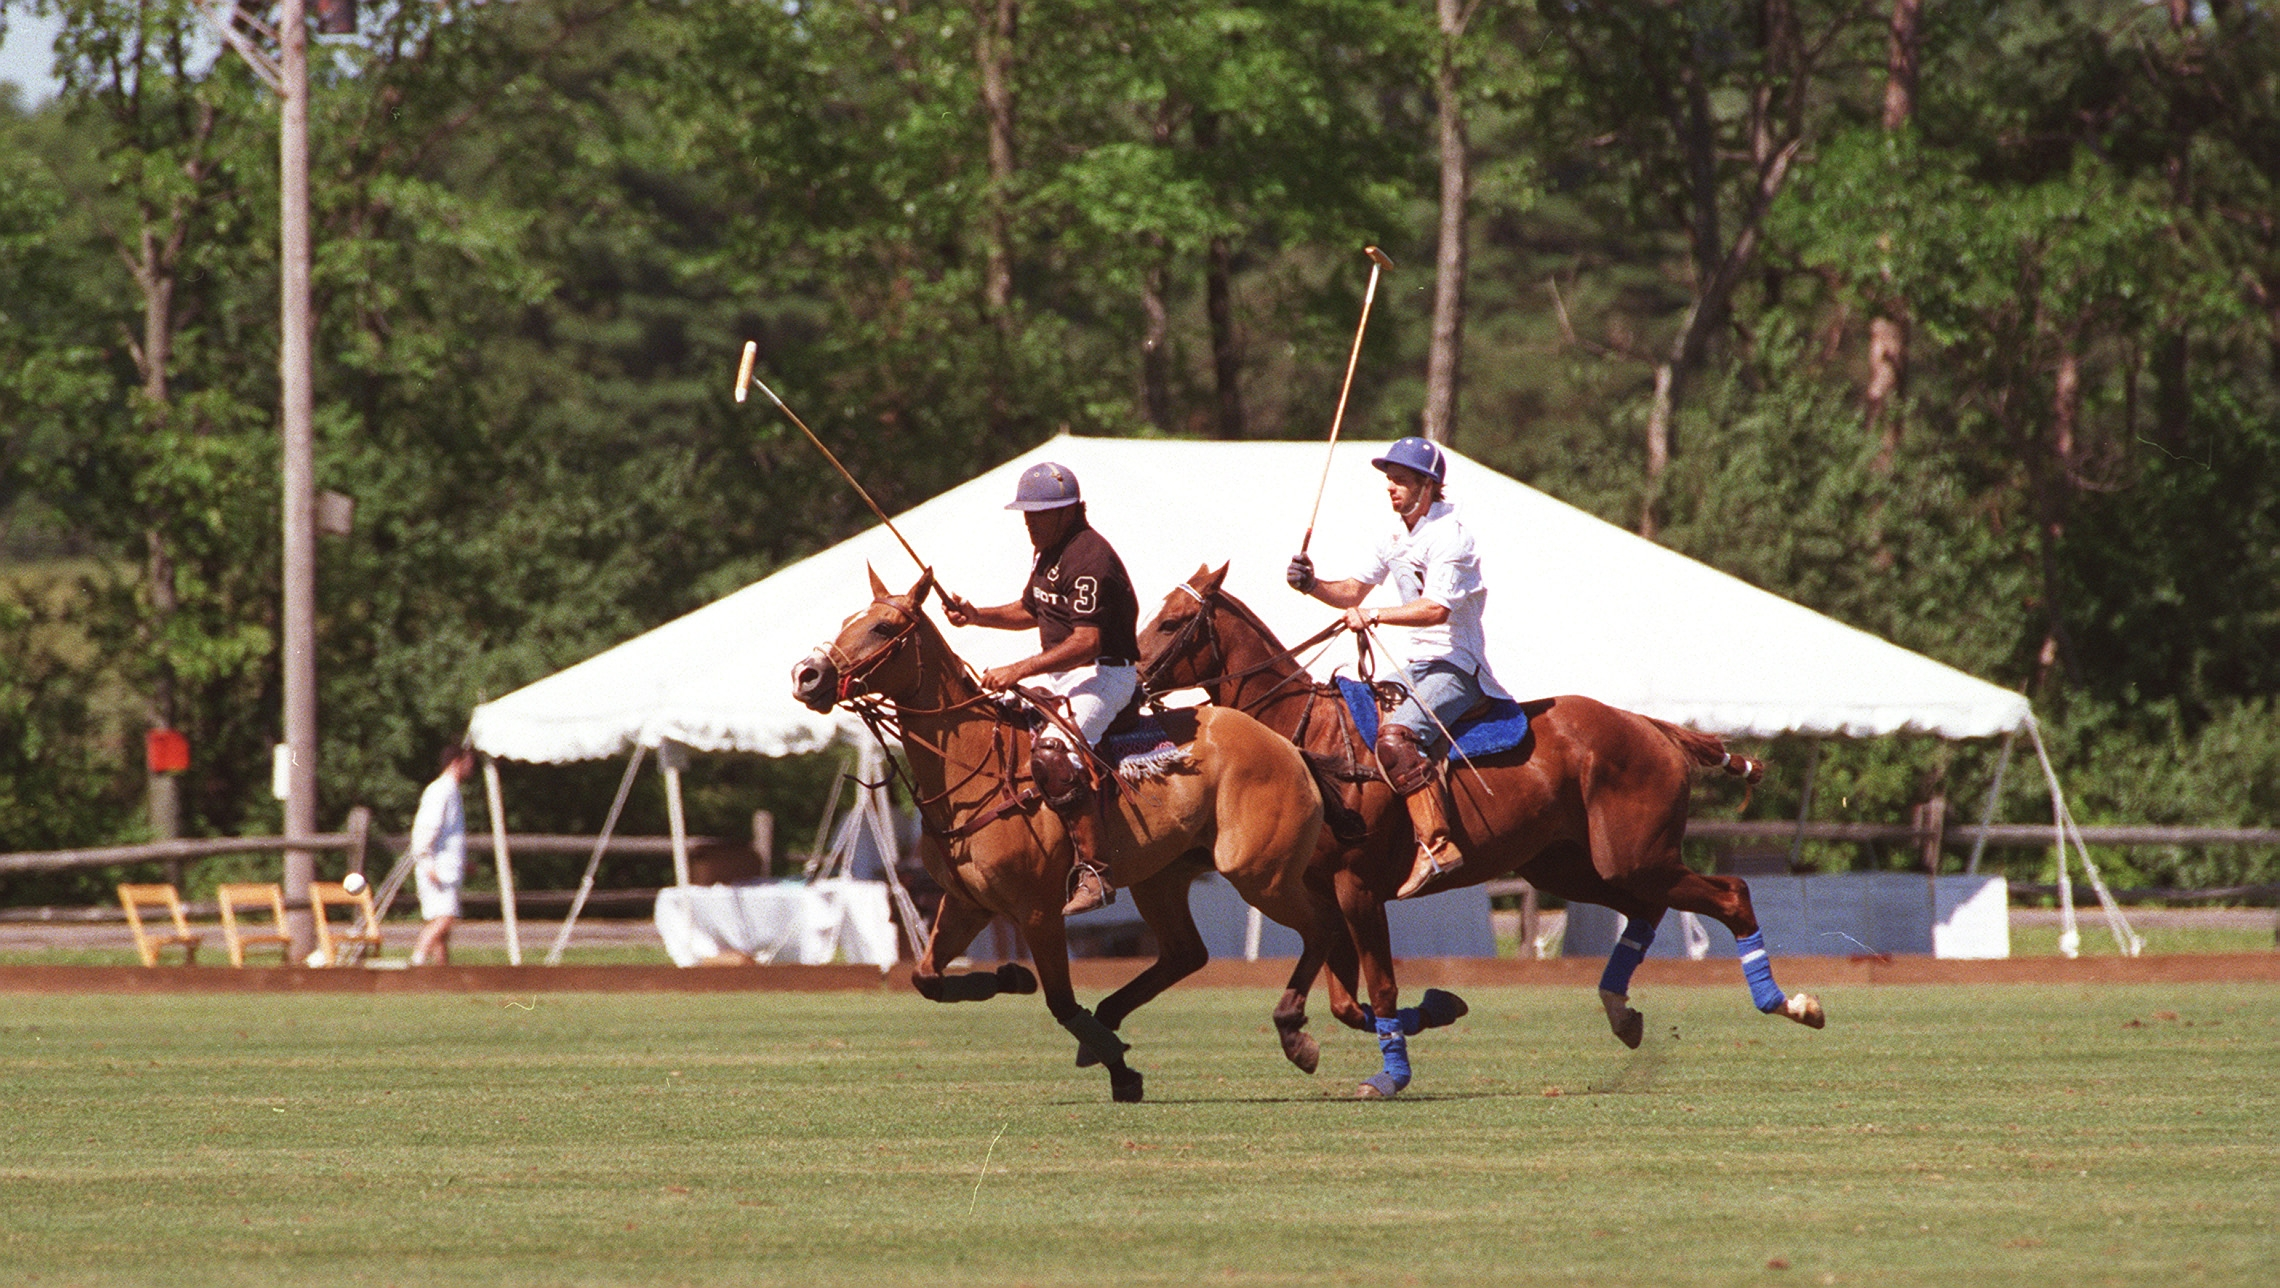 Saturday's polo match at Knox Farm will be hosted by the Stables at Knox Inc., a split group from the Friends of Knox Farm board. The move resolved leadership problems the group was having.